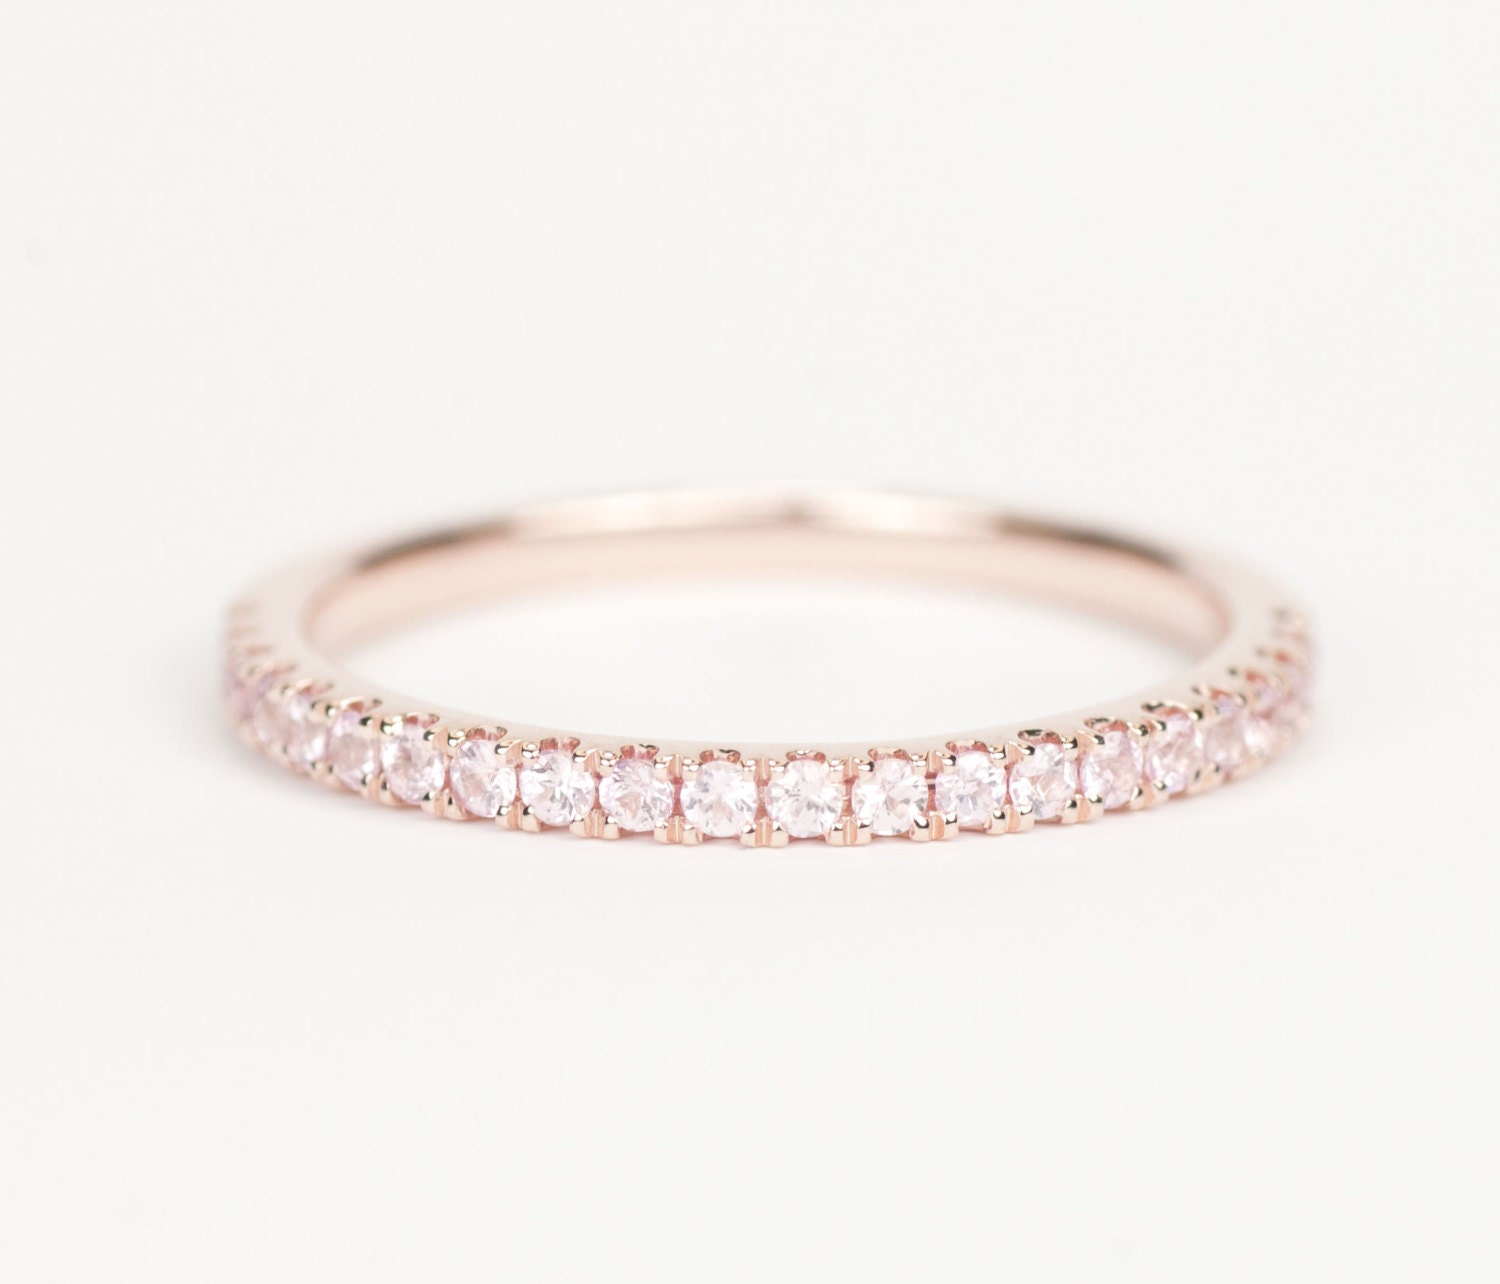 Certified light pink sapphire 14k rose gold wedding band zoom junglespirit Choice Image